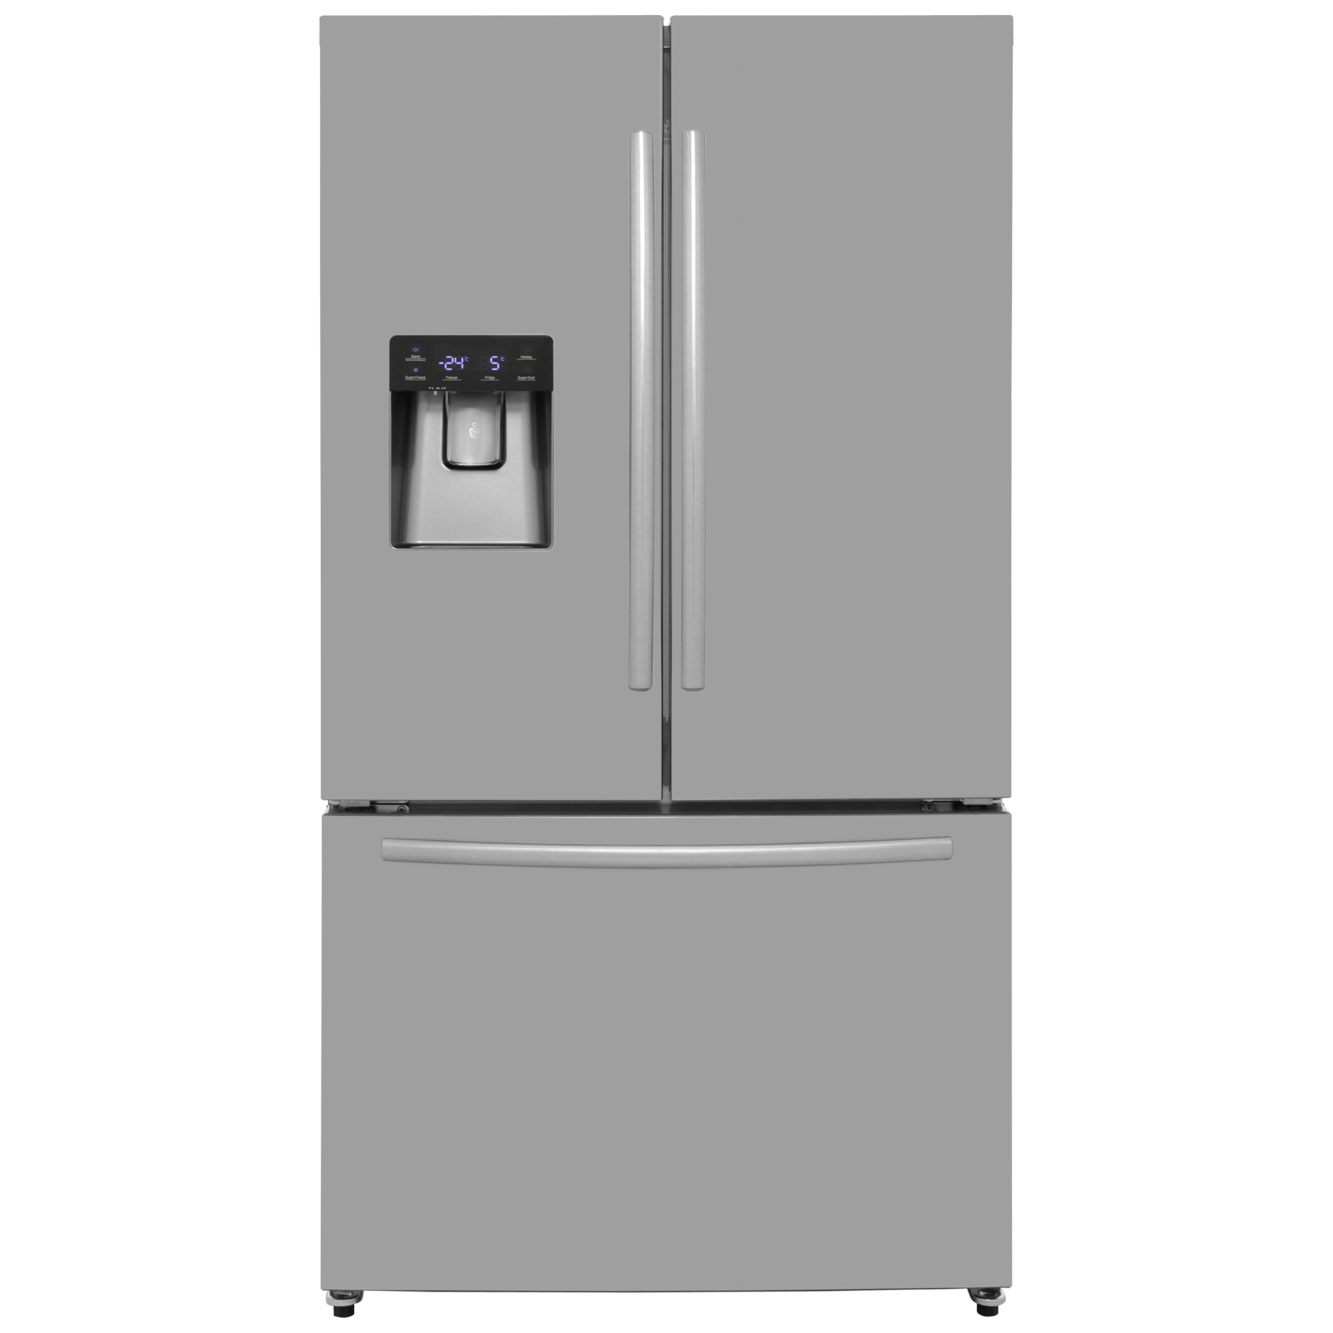 Hisense Rf697n4zs1 American Fridge Freezer Stainless